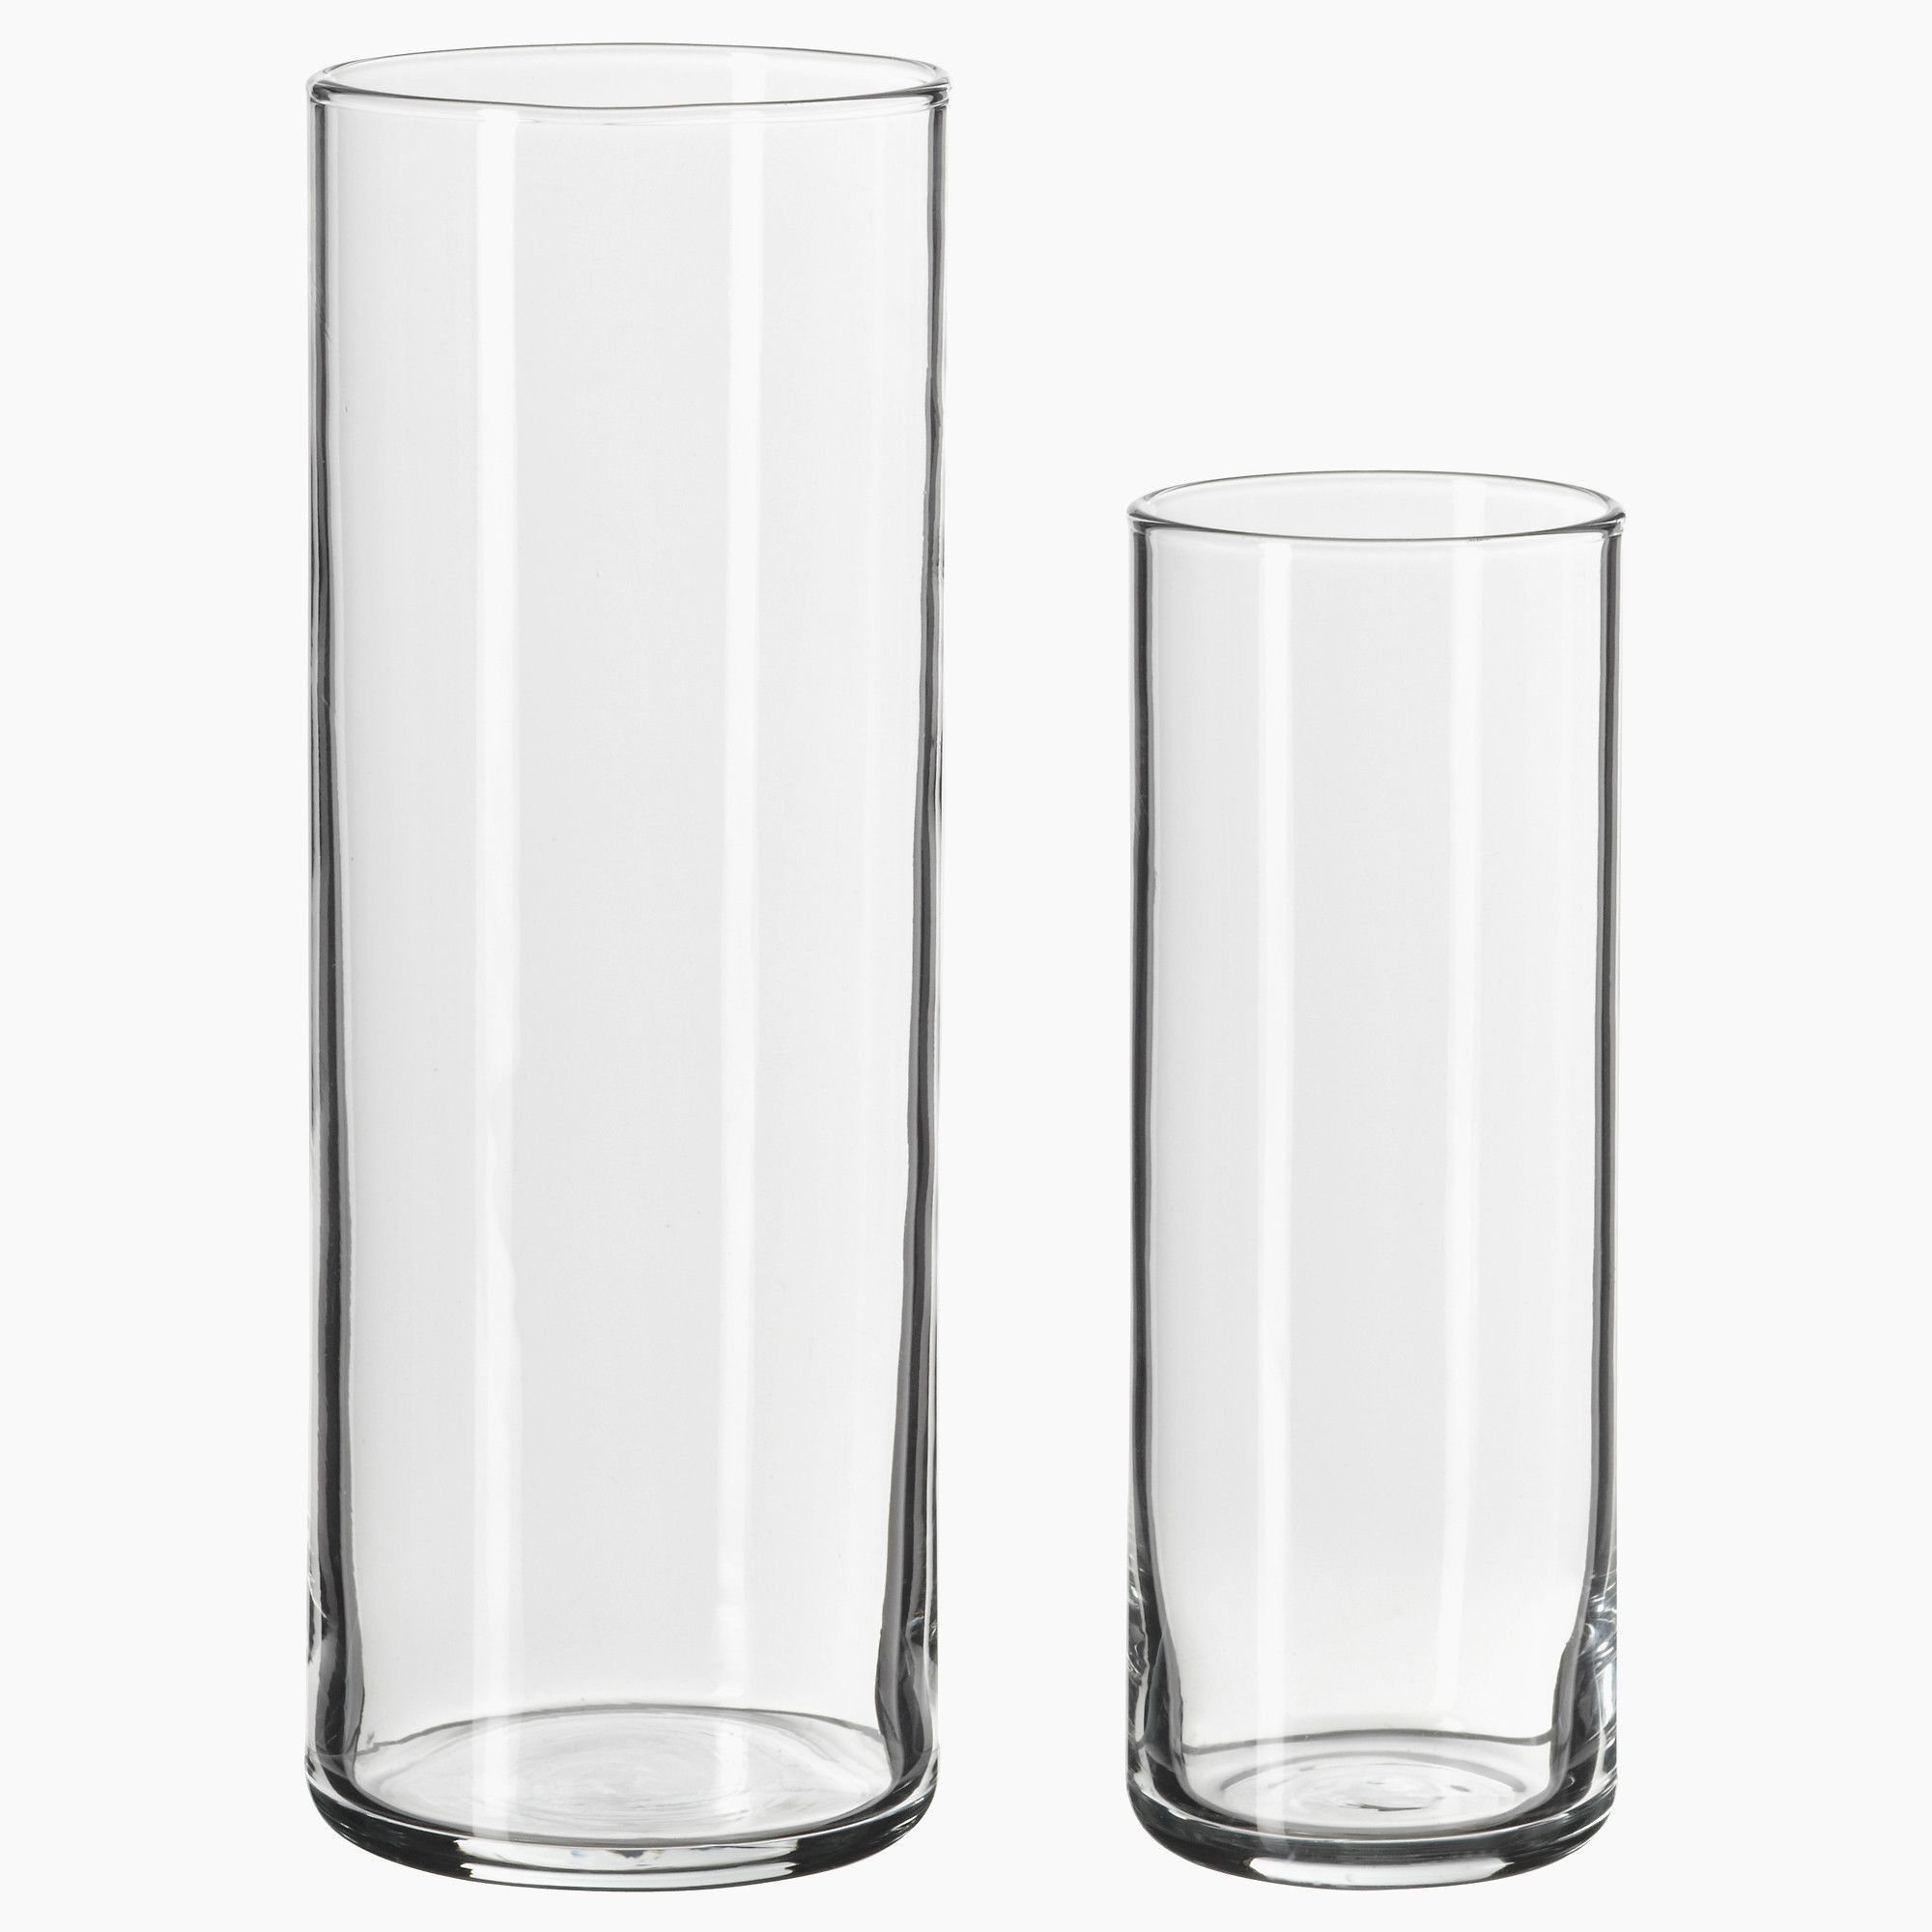 tall square glass vases for centerpieces of 47 vase centerpiece ideas the weekly world throughout wooden wall vase new tall vase centerpiece ideas vases flowers in